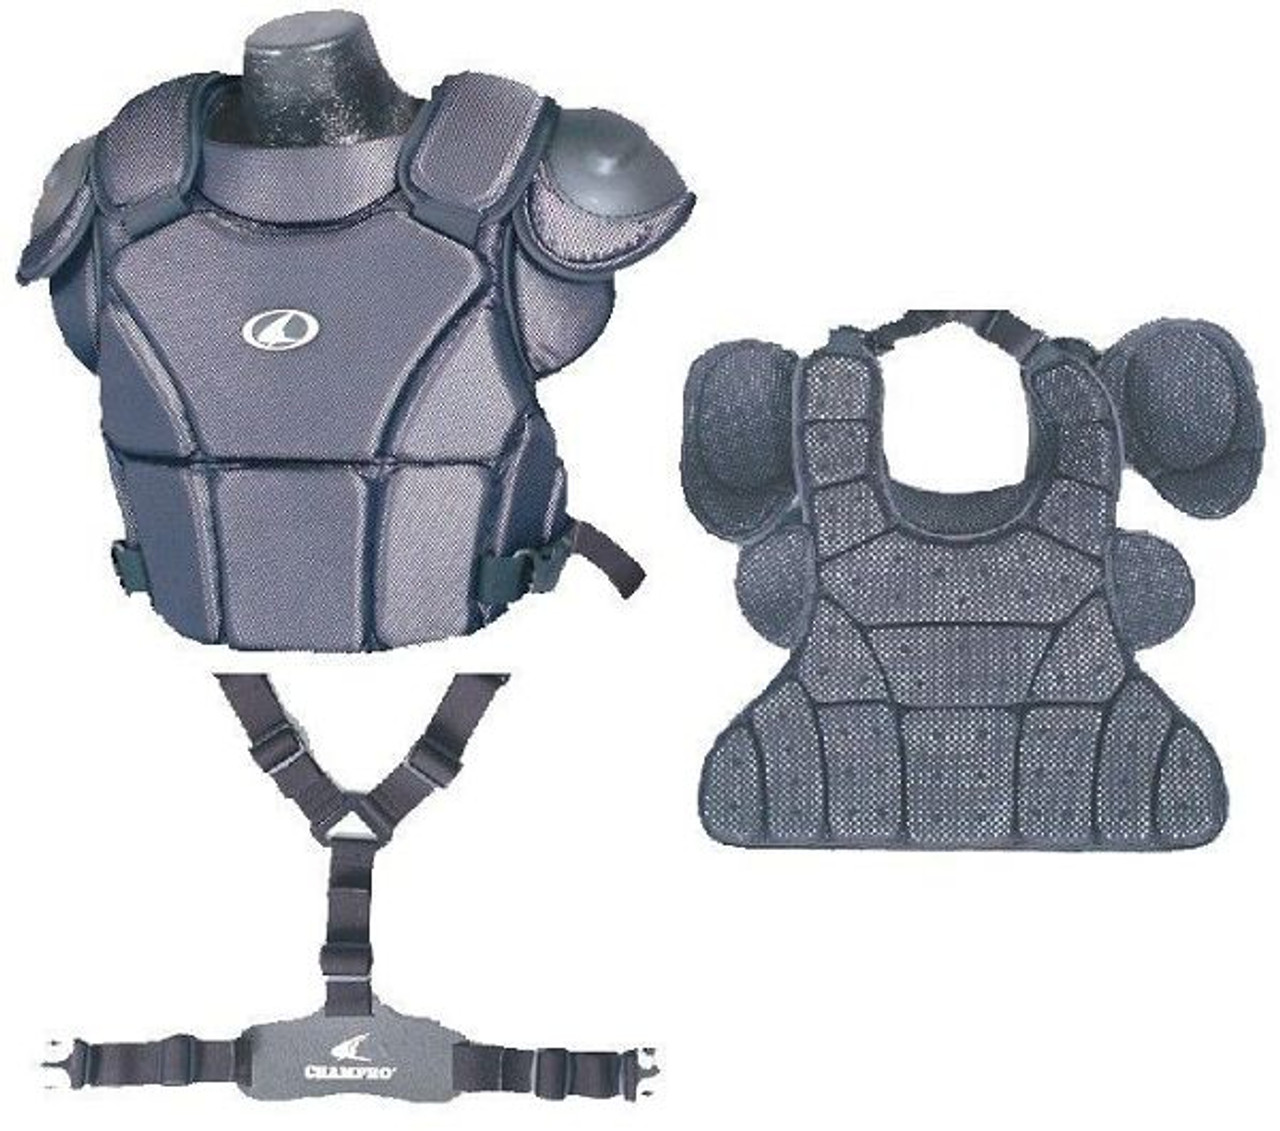 Champro Umpire Chest Protector Detail